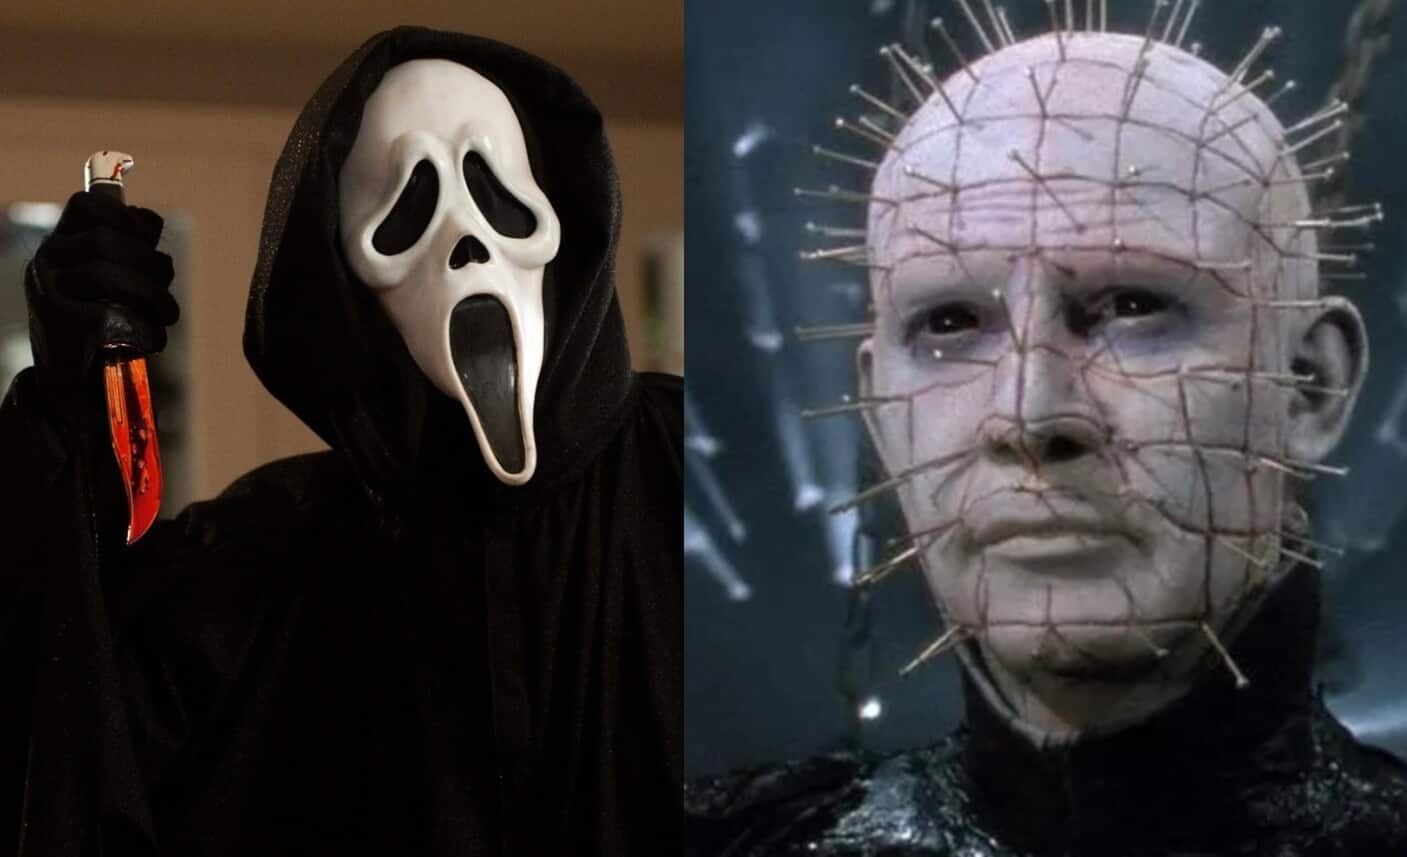 Blumhouse Wants To Make New 'Scream' And 'Hellraiser' Movies